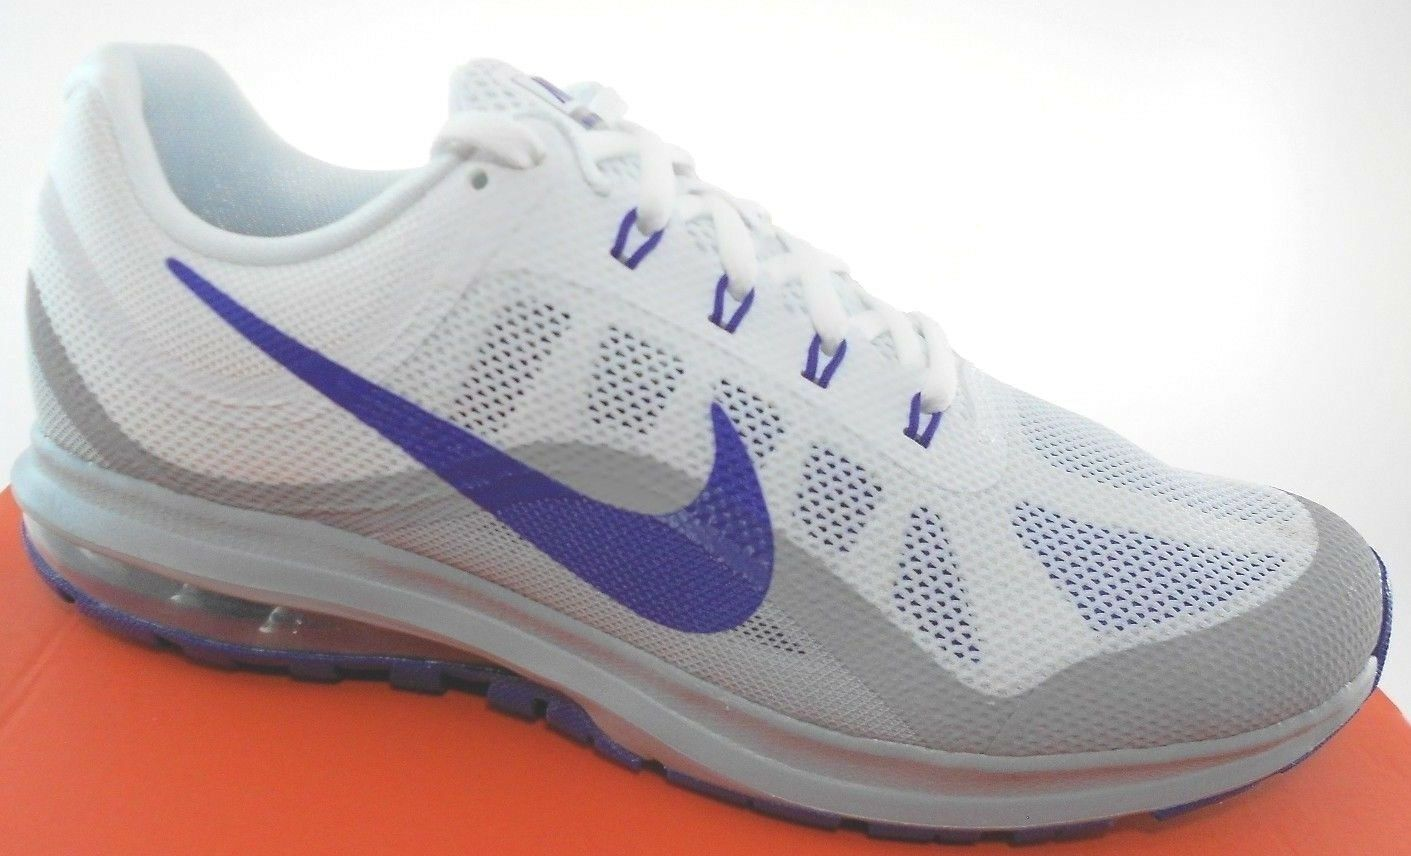 NIKE AIR MAX DYNASTY 2 MEN'S WHITE/BLUE SHOES